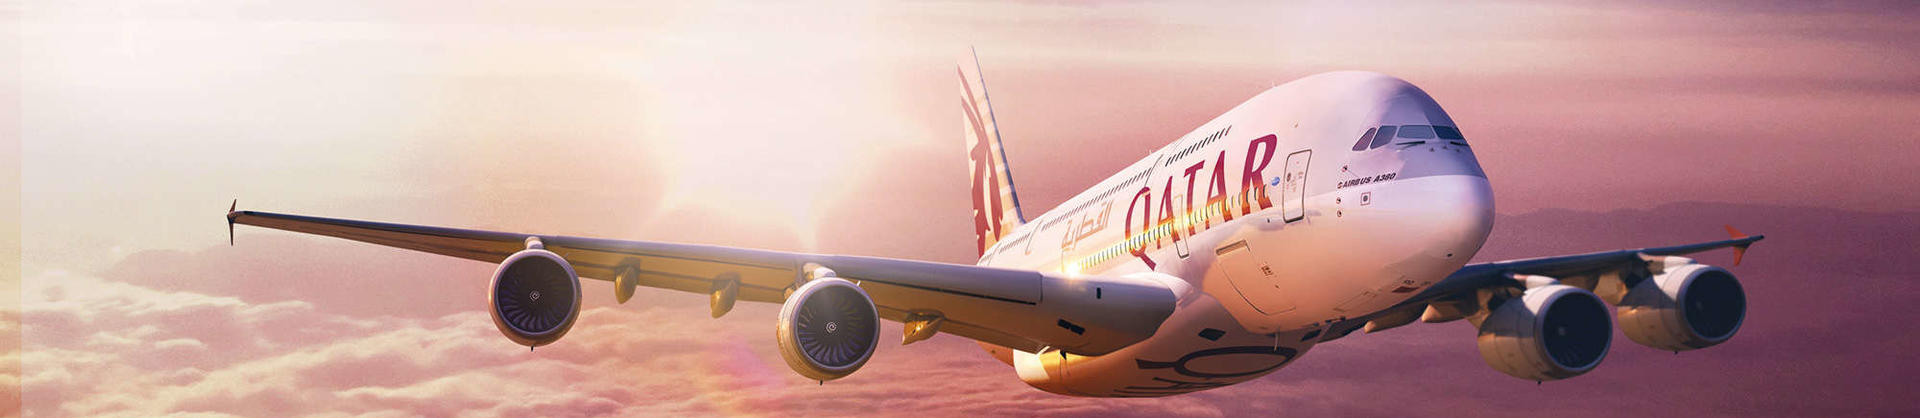 Qatar Airways A380 aircraft in the sky